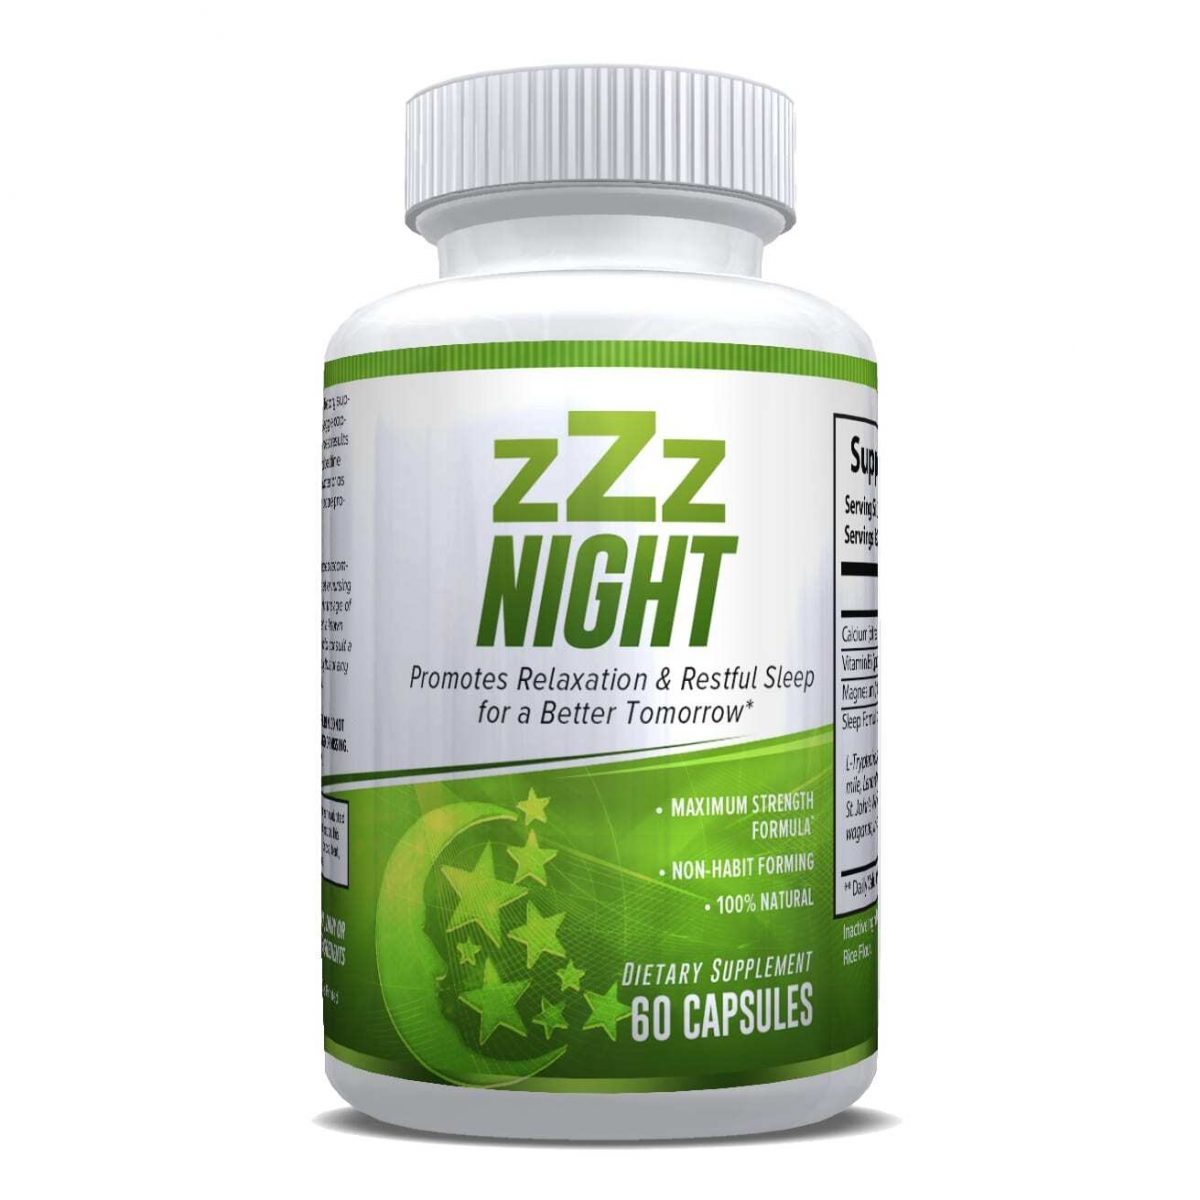 zZz Night Natural Sleep Aid - Non-Habit Sleeping Pills - Promotes Relaxation & Restful Sleep for a Better Tomorrow - 60 Capsules-650